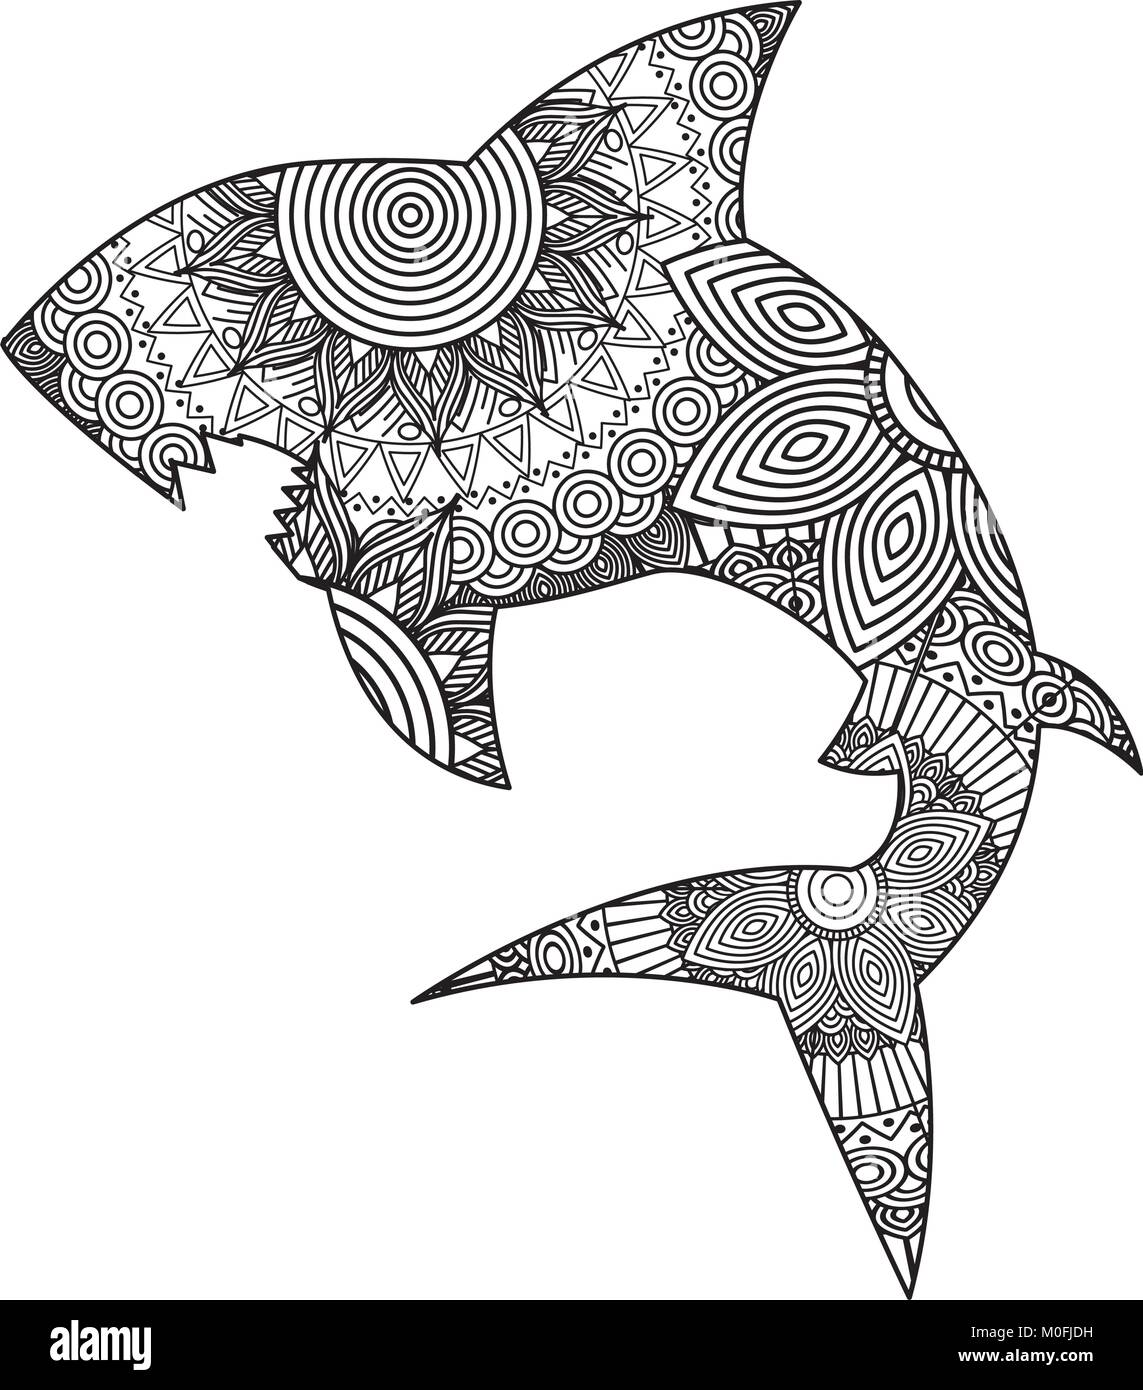 Shark Drawing Stock Photos amp Shark